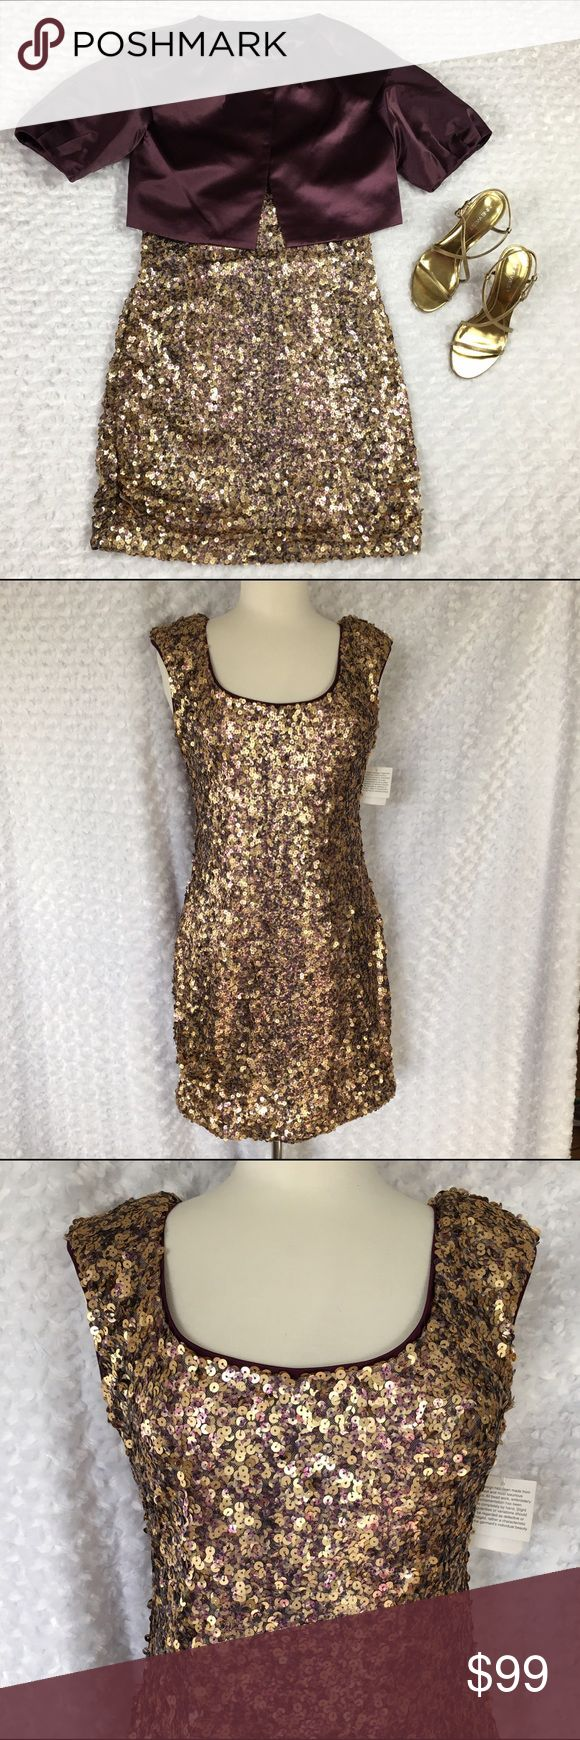 "❤️Aidan by Aidan Mattox Sequin Dress❤️ Stunning!  Perfect sequin ""wiggle"" dress from Aidan by Aidan Mattox.  Gorgeous gold, purple and pinkish sequins-  this almost has a rose gold look to it-so hot right now!  Dress is 80% polyester and 20% nylon.  Lining is 100% polyester.  Size 10.  Perfect condition-never worn.  Truly a quality piece!  Perfect for Valentine's Day!  ❤️❤️. I'm always open to reasonable offers.  😃 Aidan Mattox Dresses"